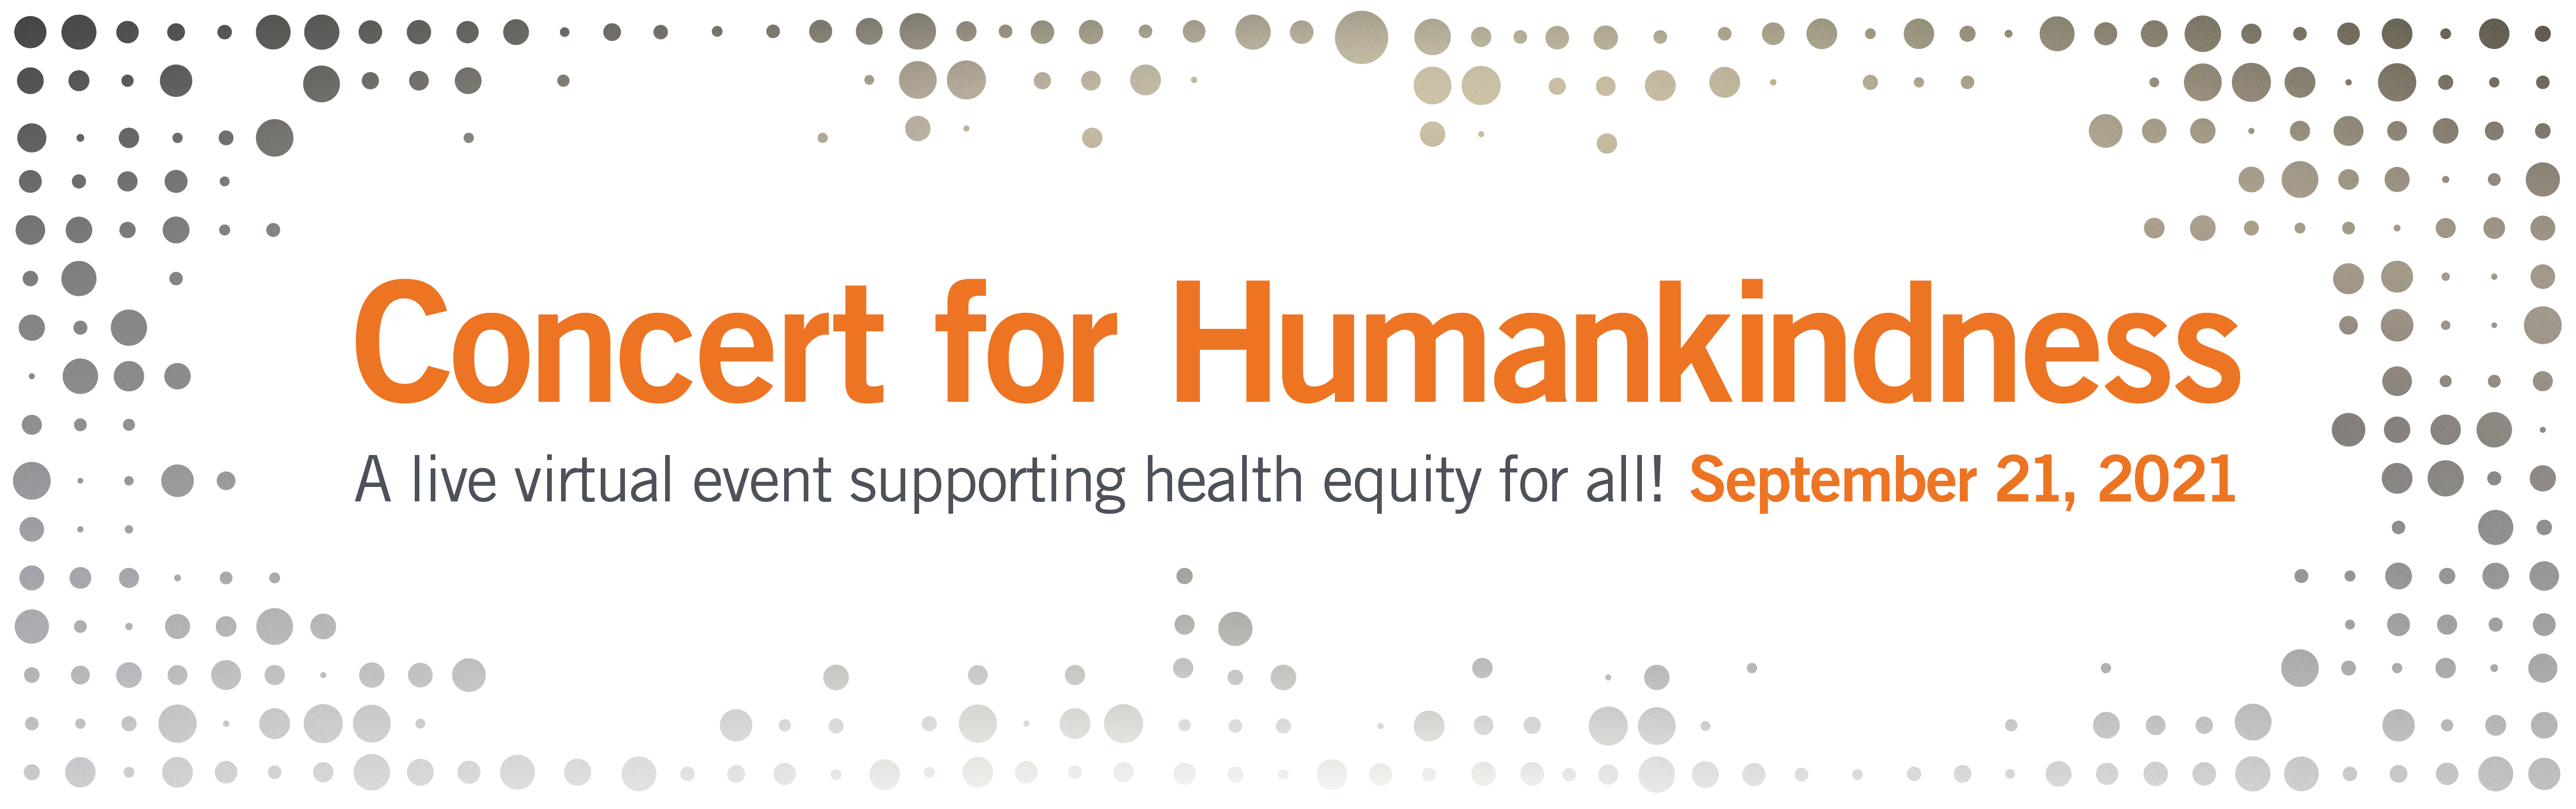 Concert for Humankindness graphic banner